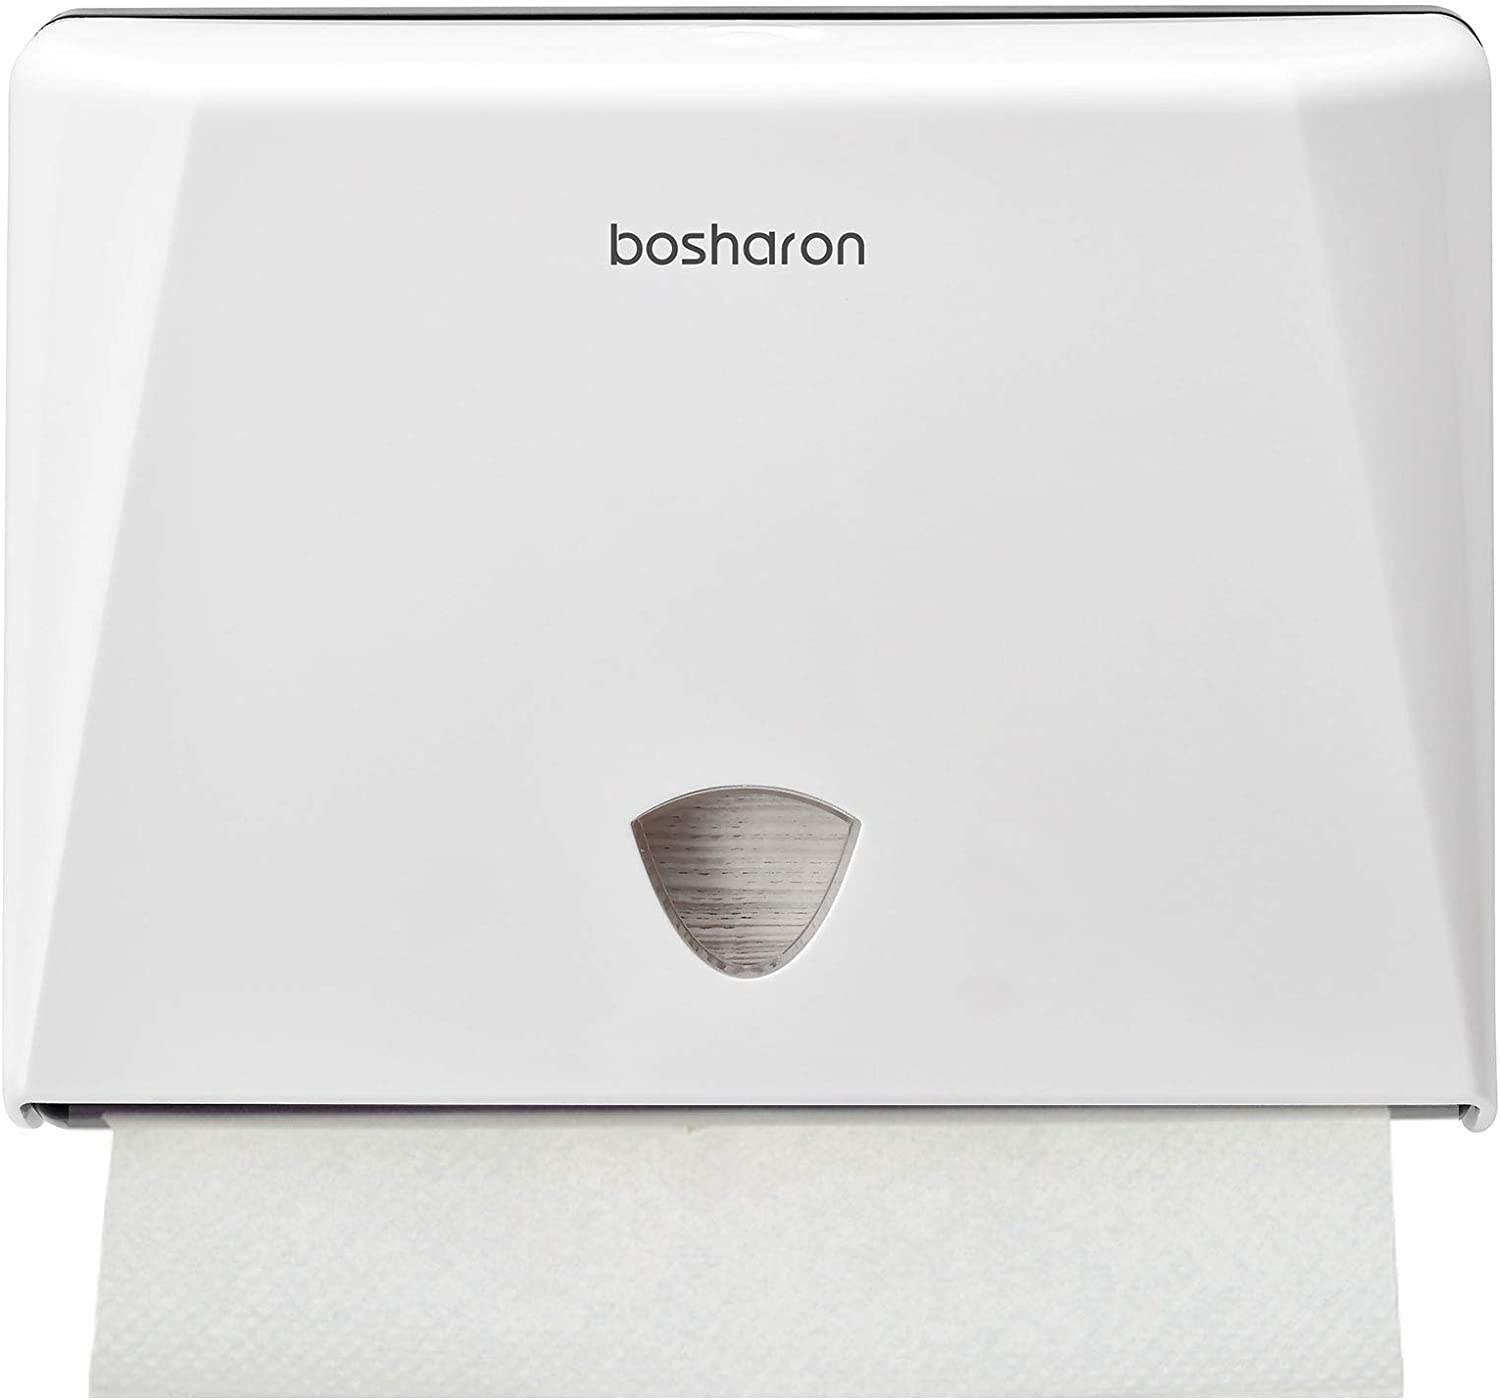 Bosharon Paper Towel Wall Dispenser, Hand Paper Towel Dispenser Wall Mount for Home and Commercial Use, Multifold Paper Towel and Tissue Holder for Bath, Kitchen, Office, Business (White)